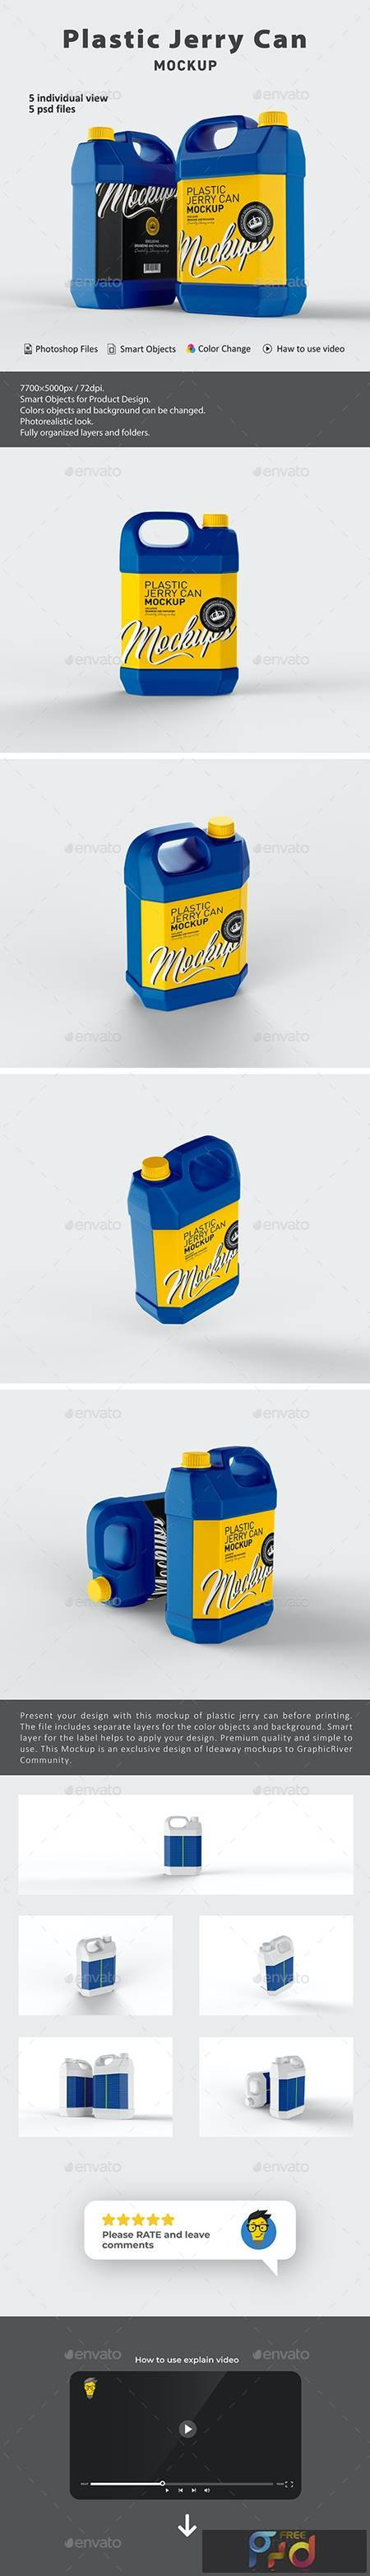 Plastic Jerry Can Mockup 26561750 1